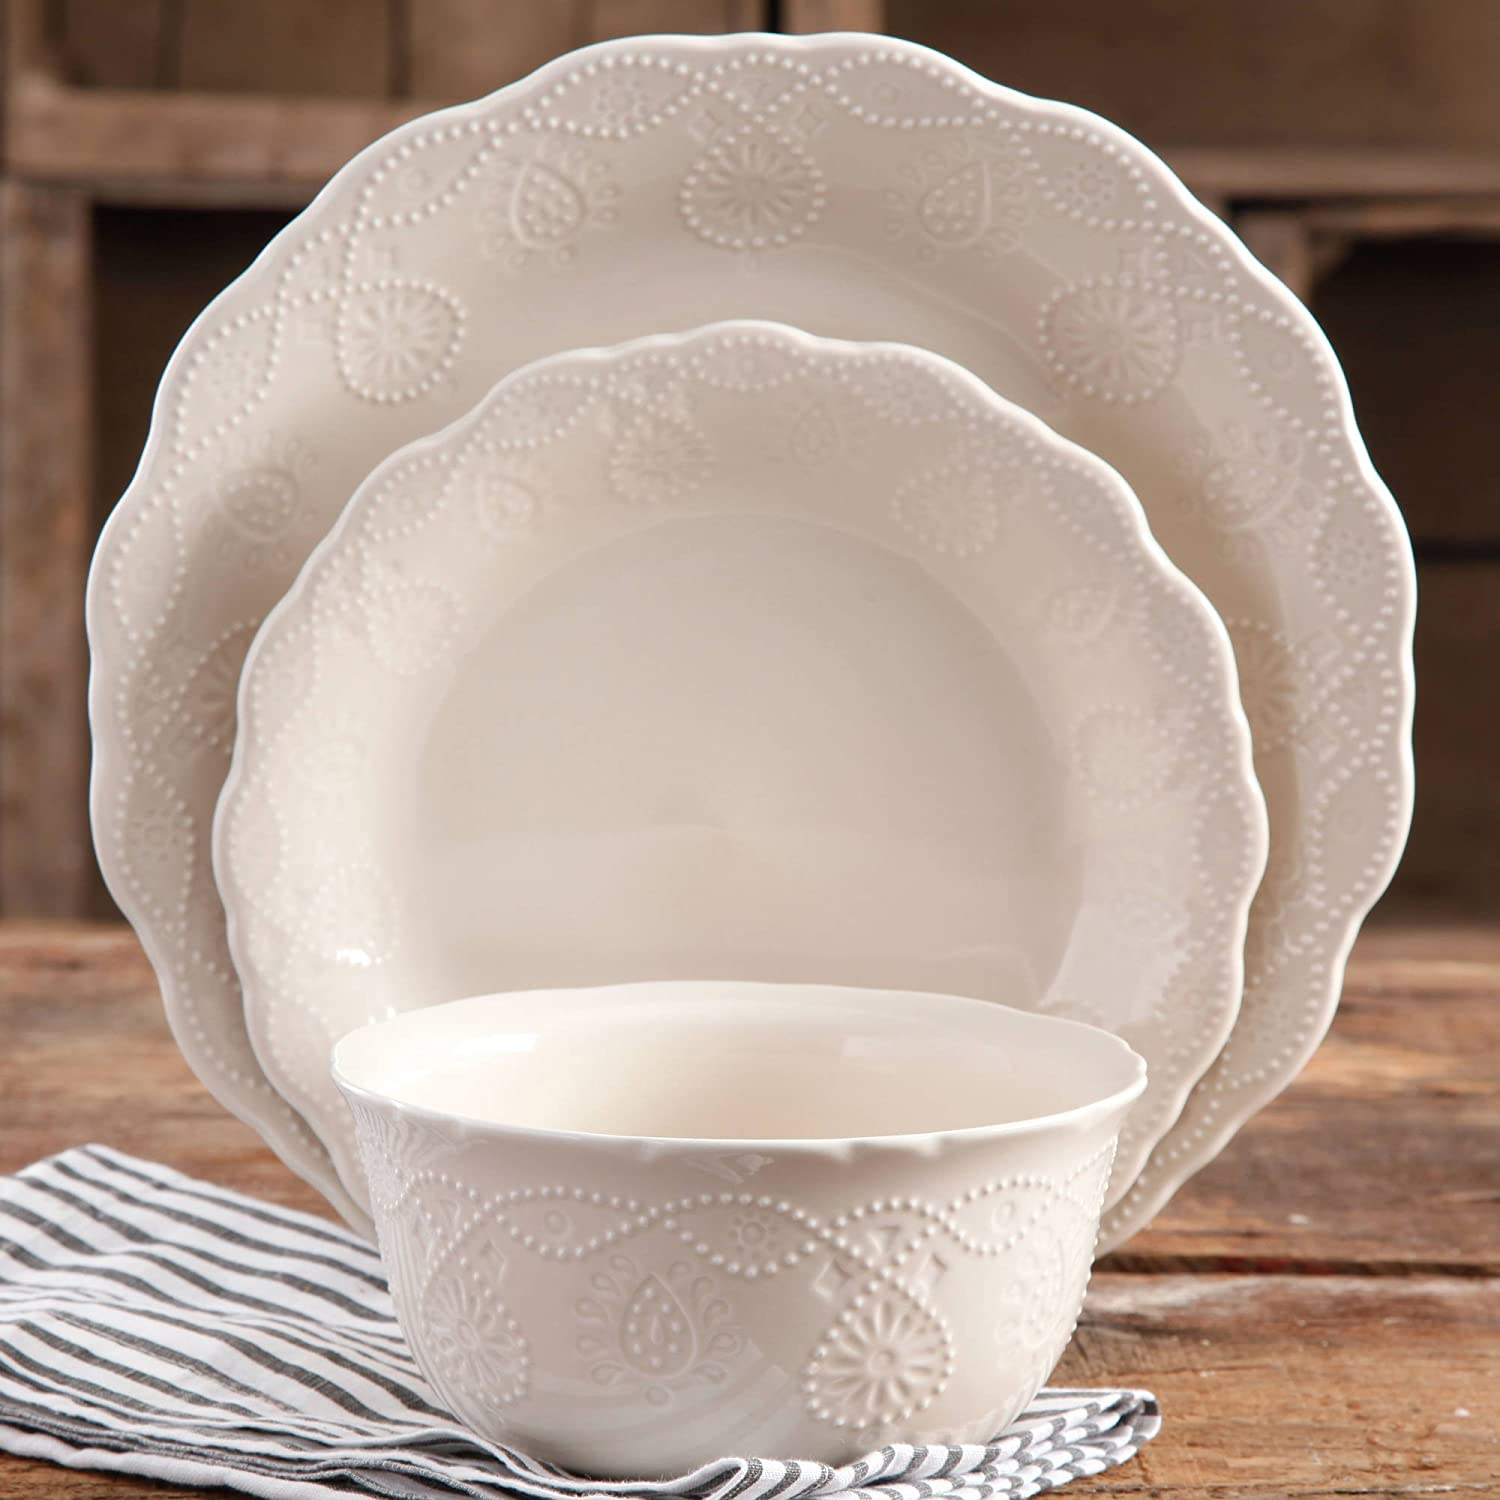 The Pioneer Woman The Pioneer Woman Cowgirl Lace 12-Piece Dinnerware Set, Linen